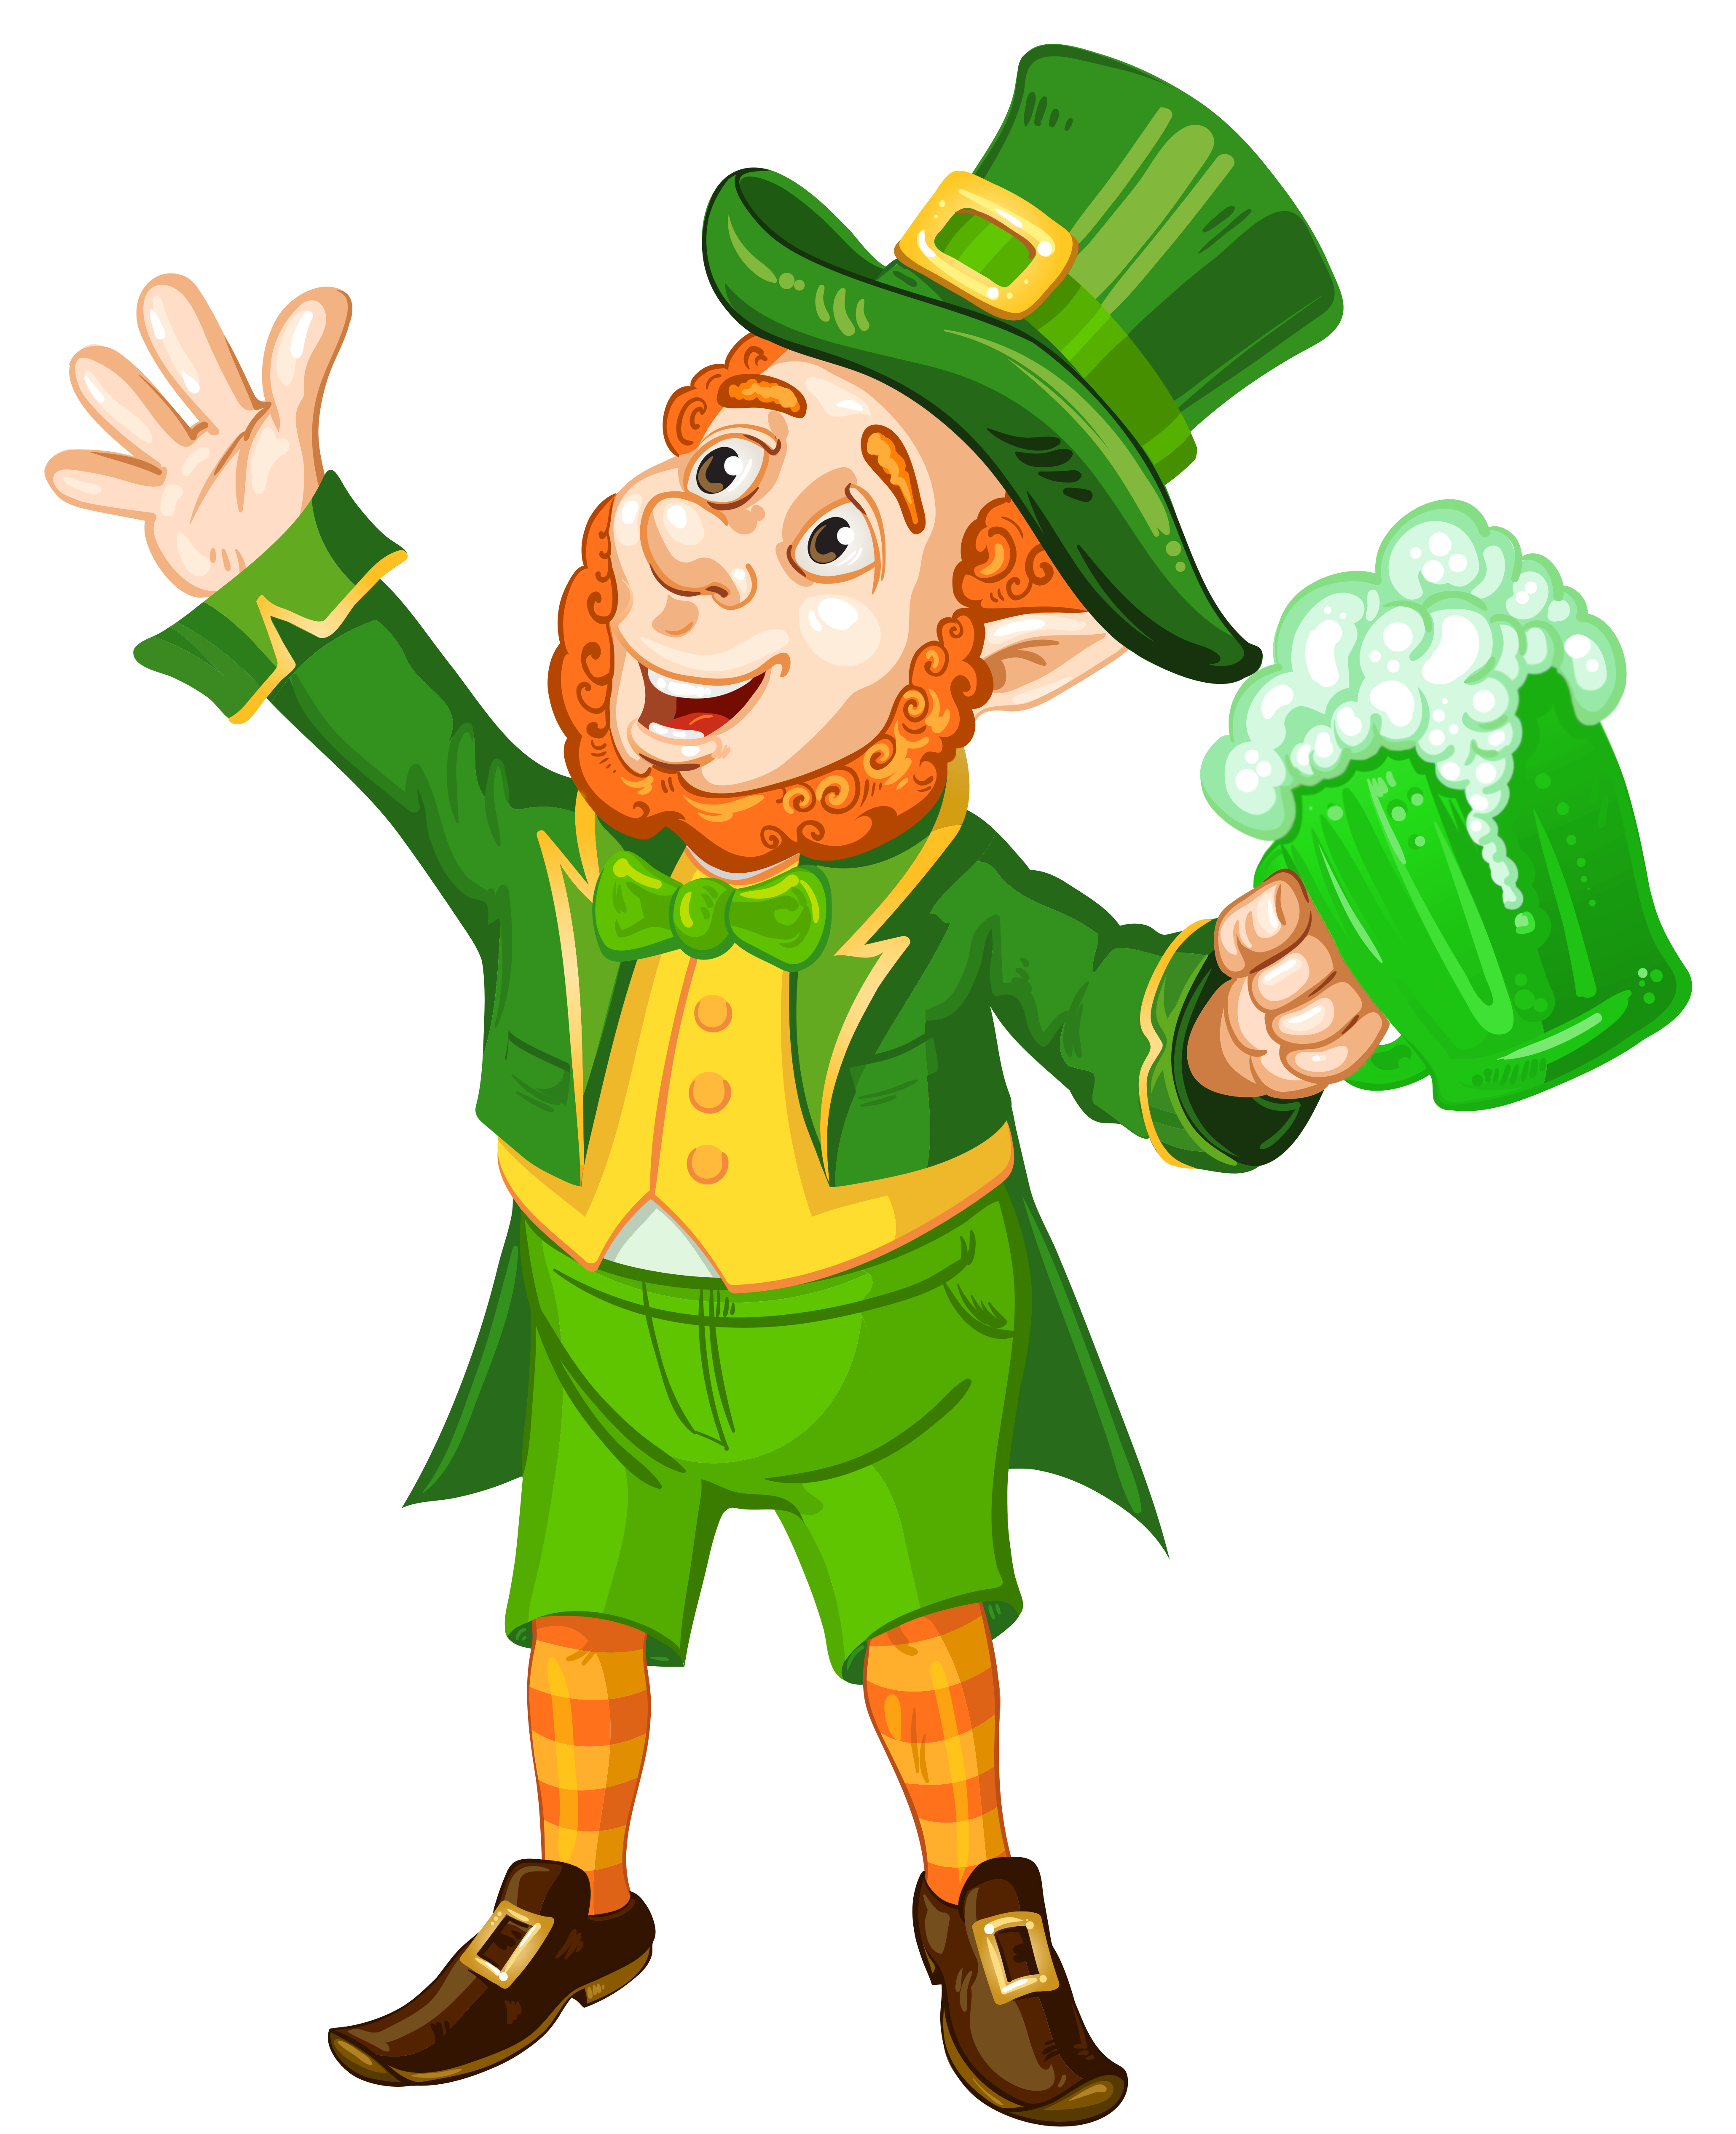 Leprechaun clip art png. St patrick day with